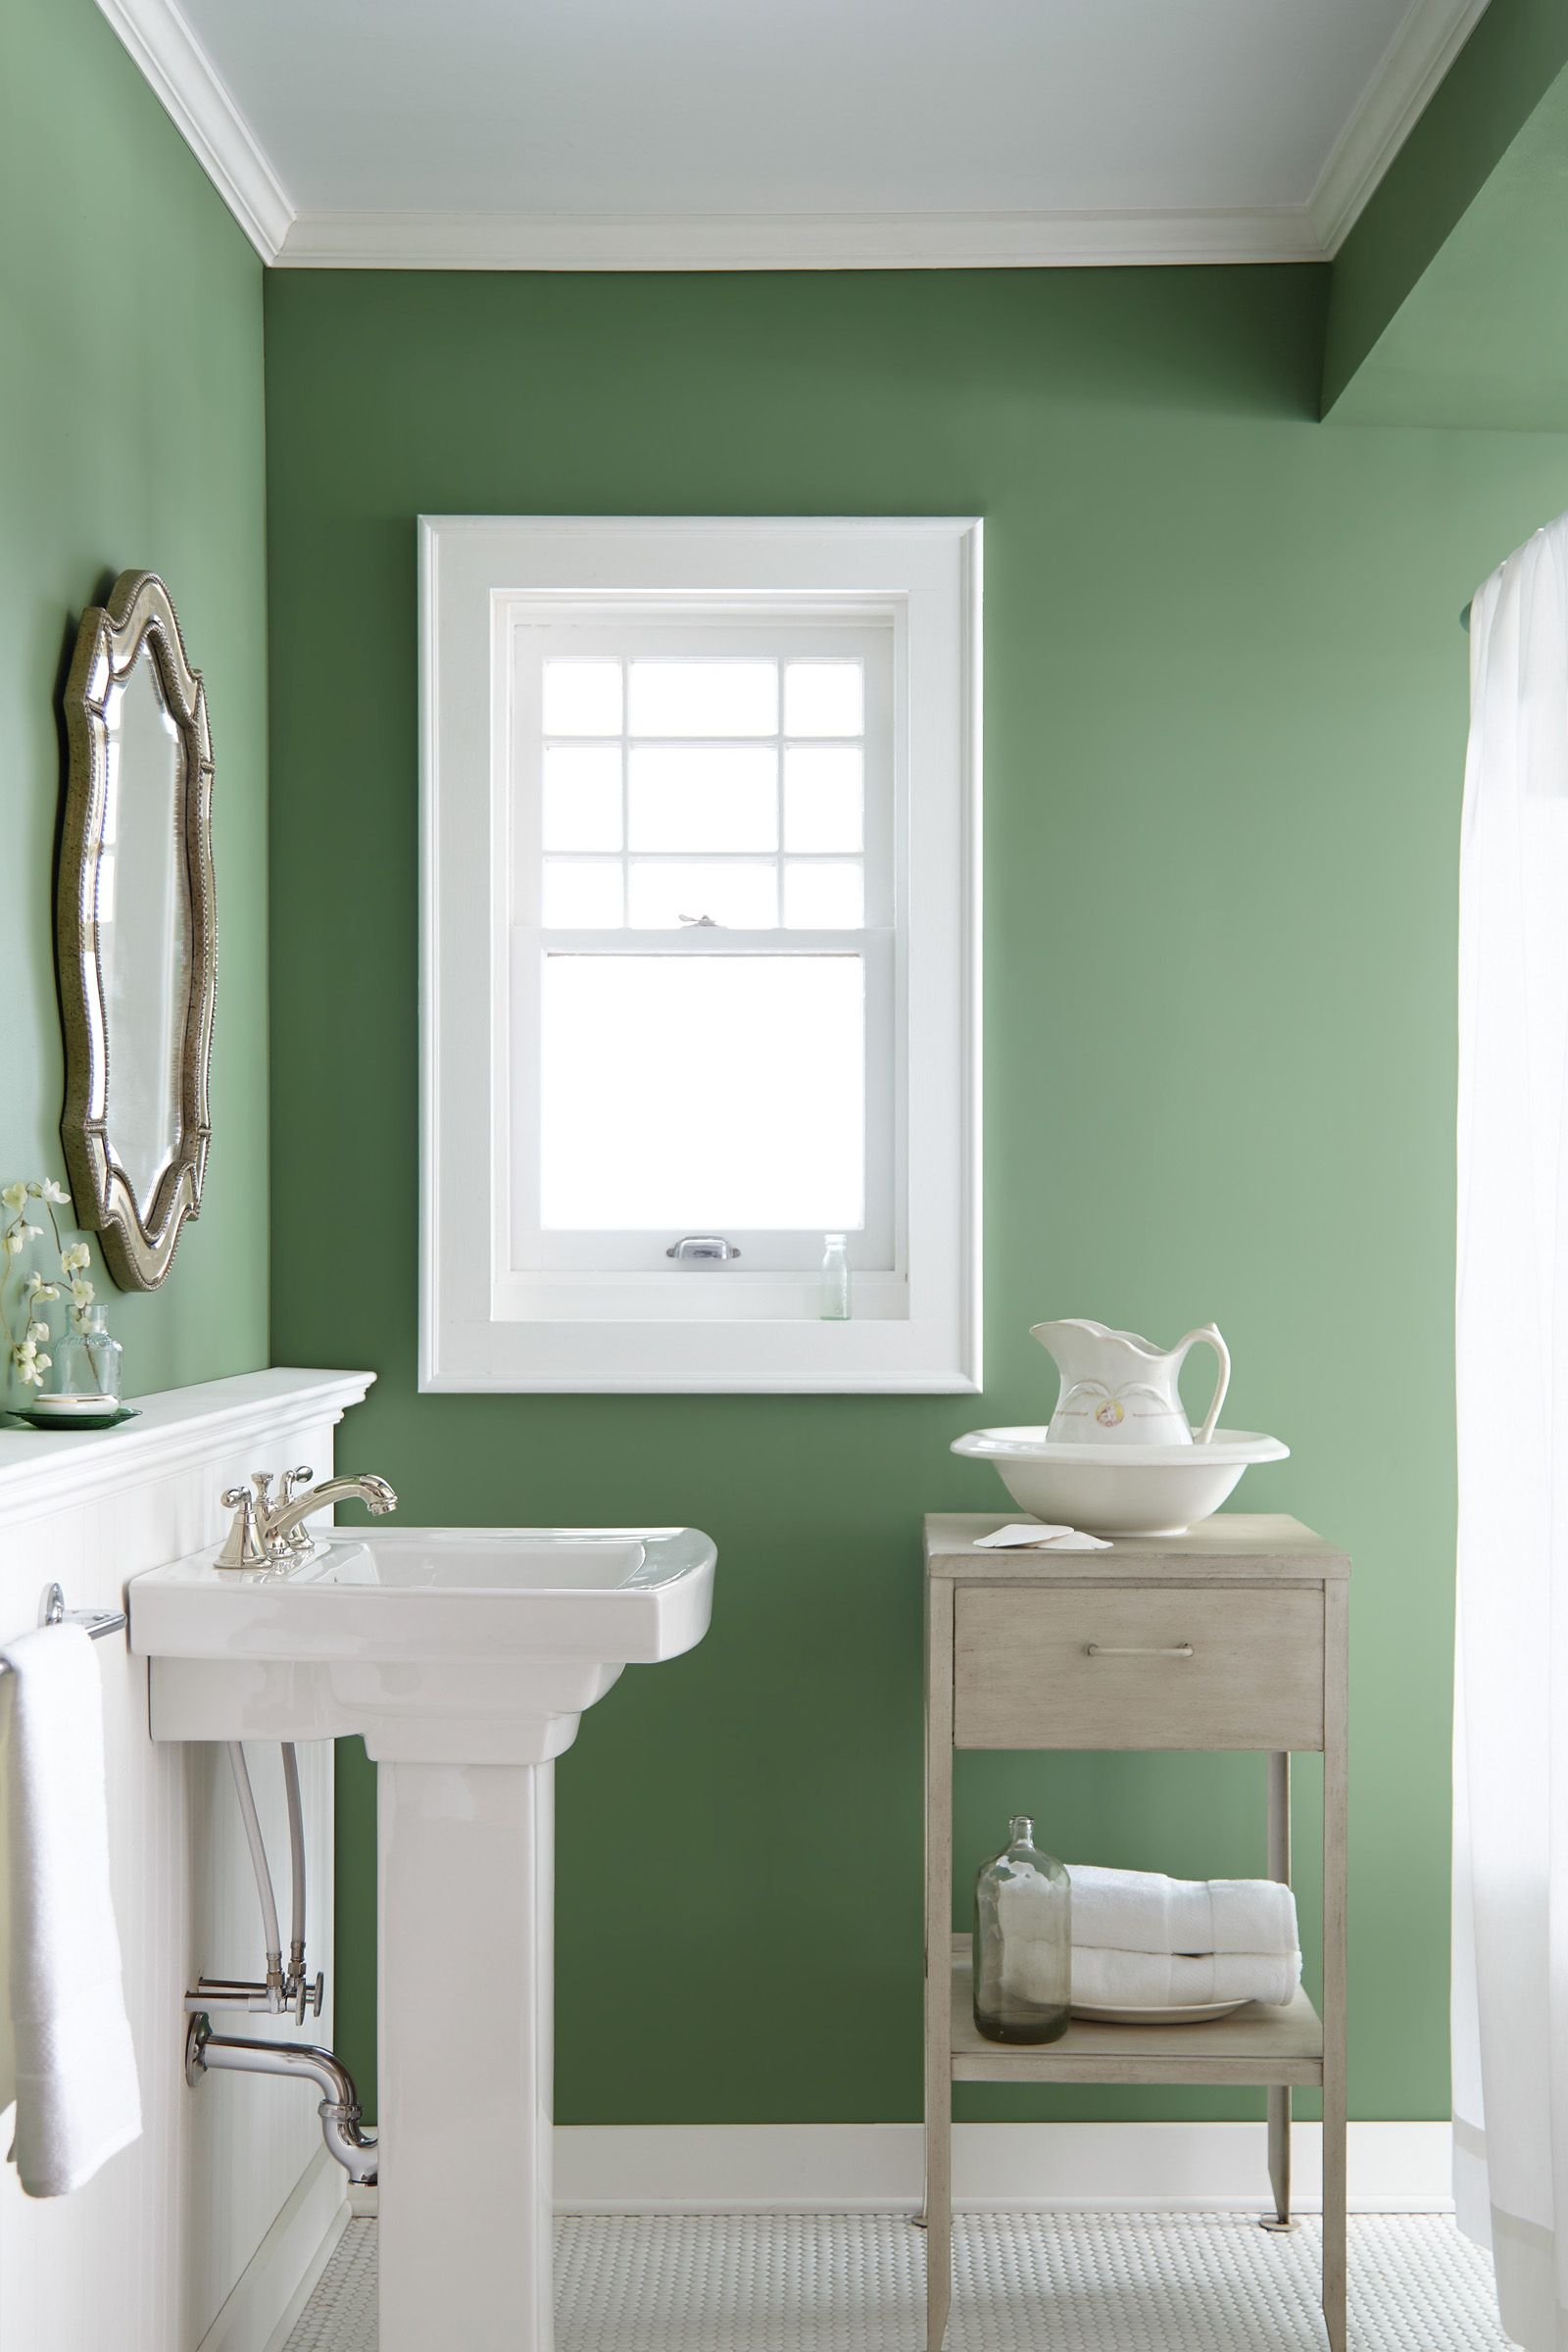 Joanna Gaines Reveals Her 5 Favorite Paint Colors Green Bathroom Paint Small Bathroom Paint Bathroom Paint Colors